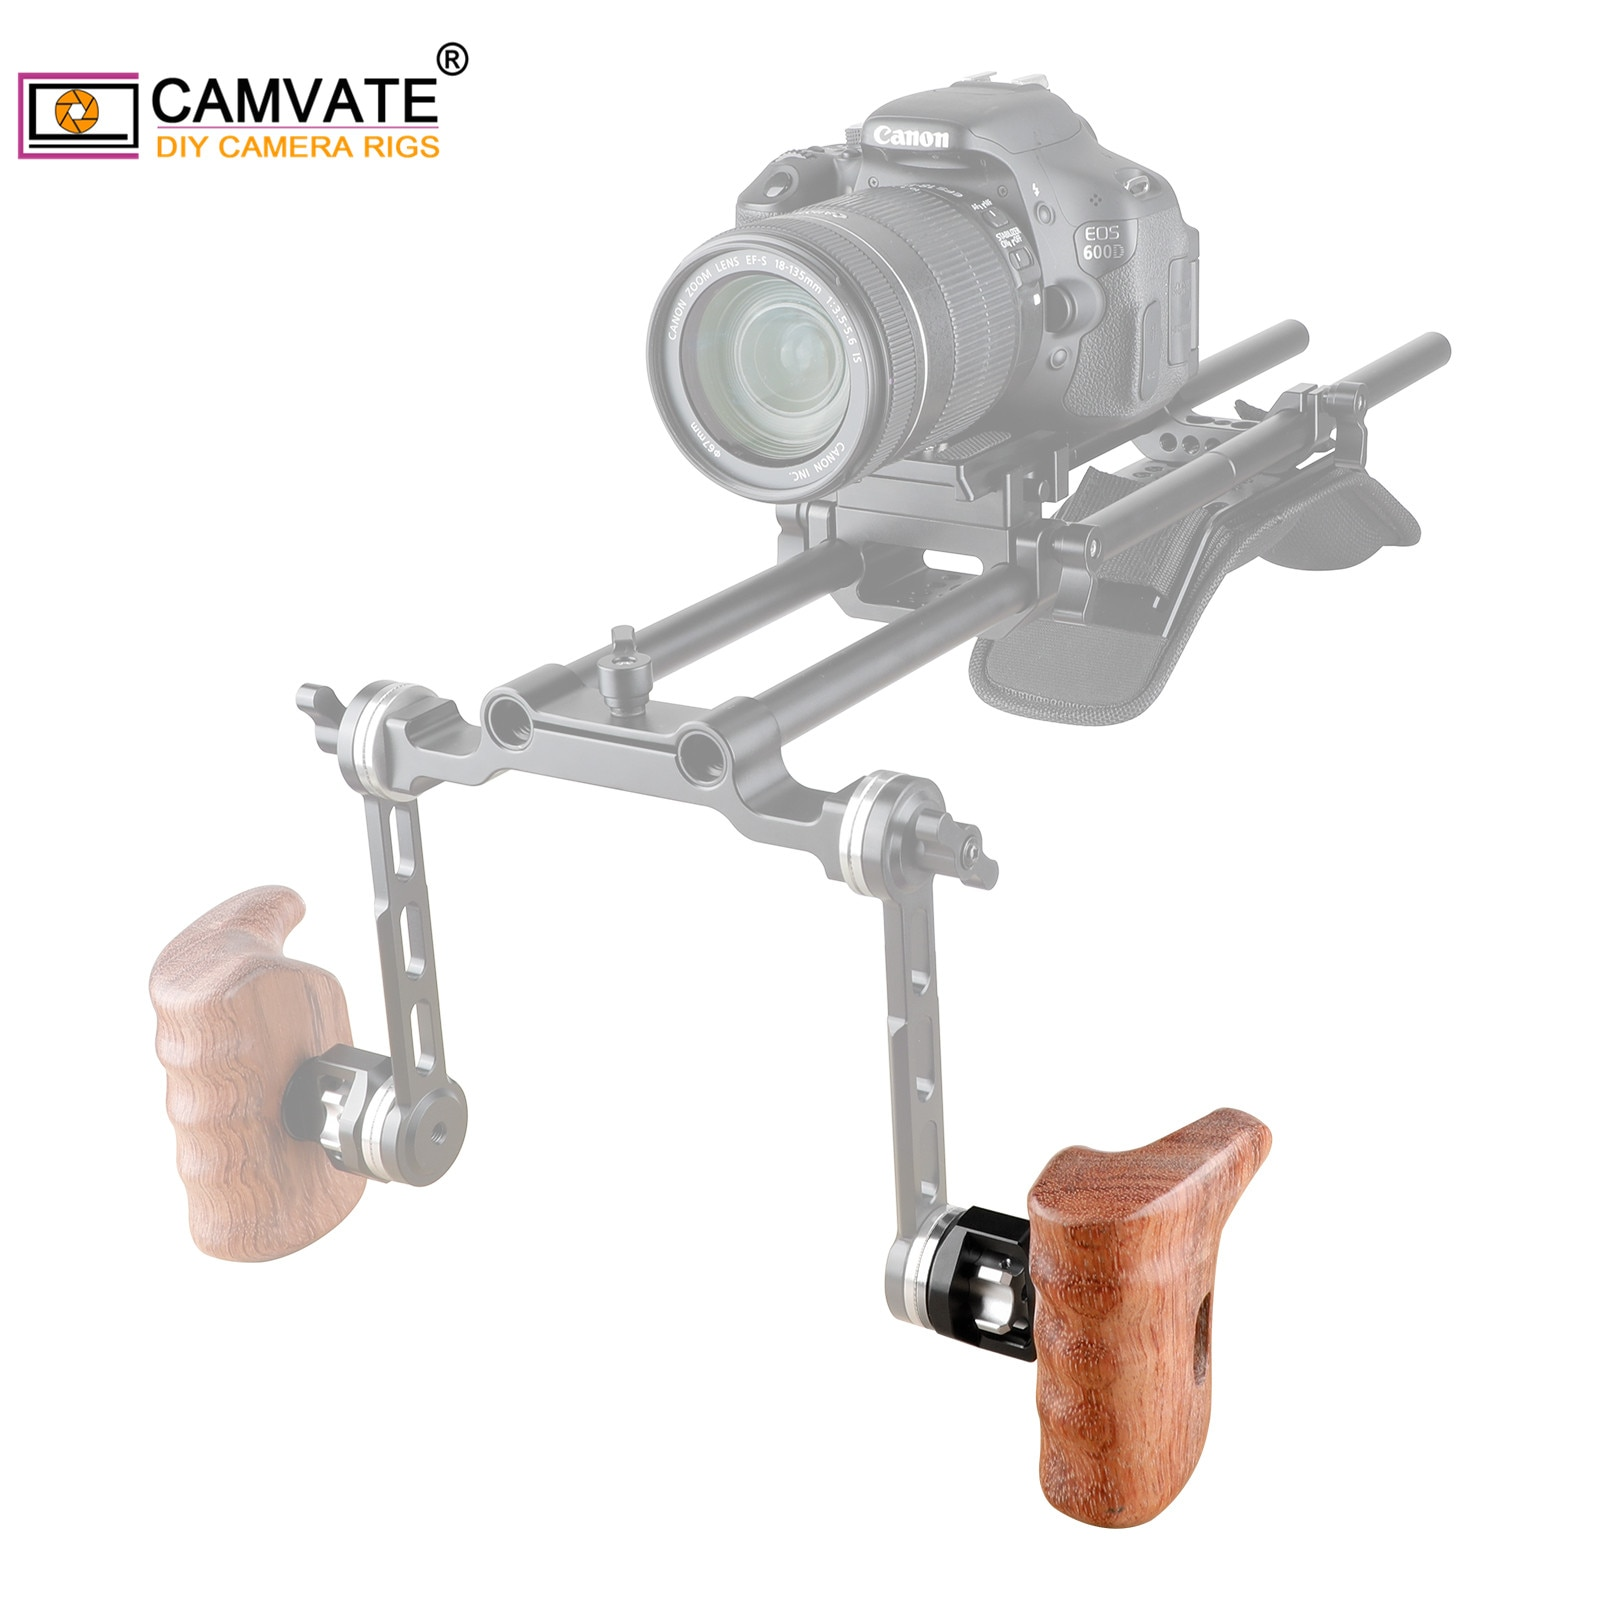 CAMVATE Camera Wooden Left Handgrip With Standard Rosette Mount M6 Threaded For DV Video Cage(RED camera/Red Rig/SLR Camera Rig)